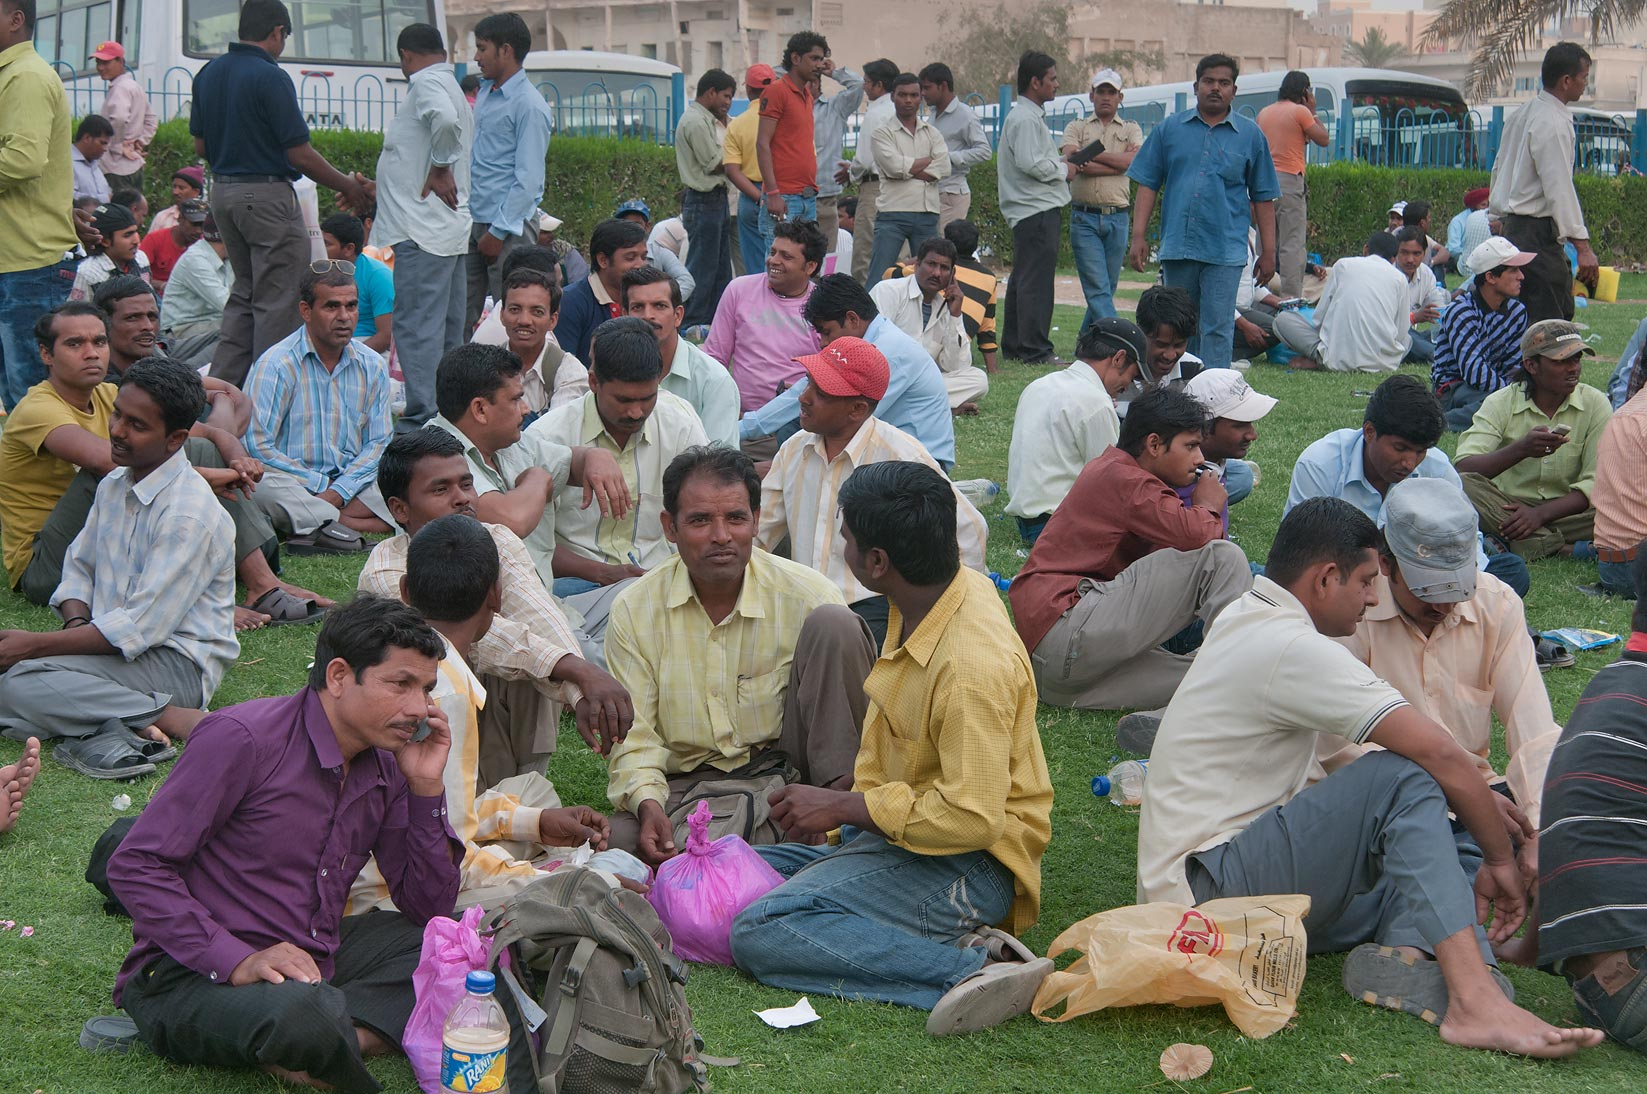 Migrant workers resting on a lawn at Central Bus Station Al Ghanim on Friday. Doha, Qatar